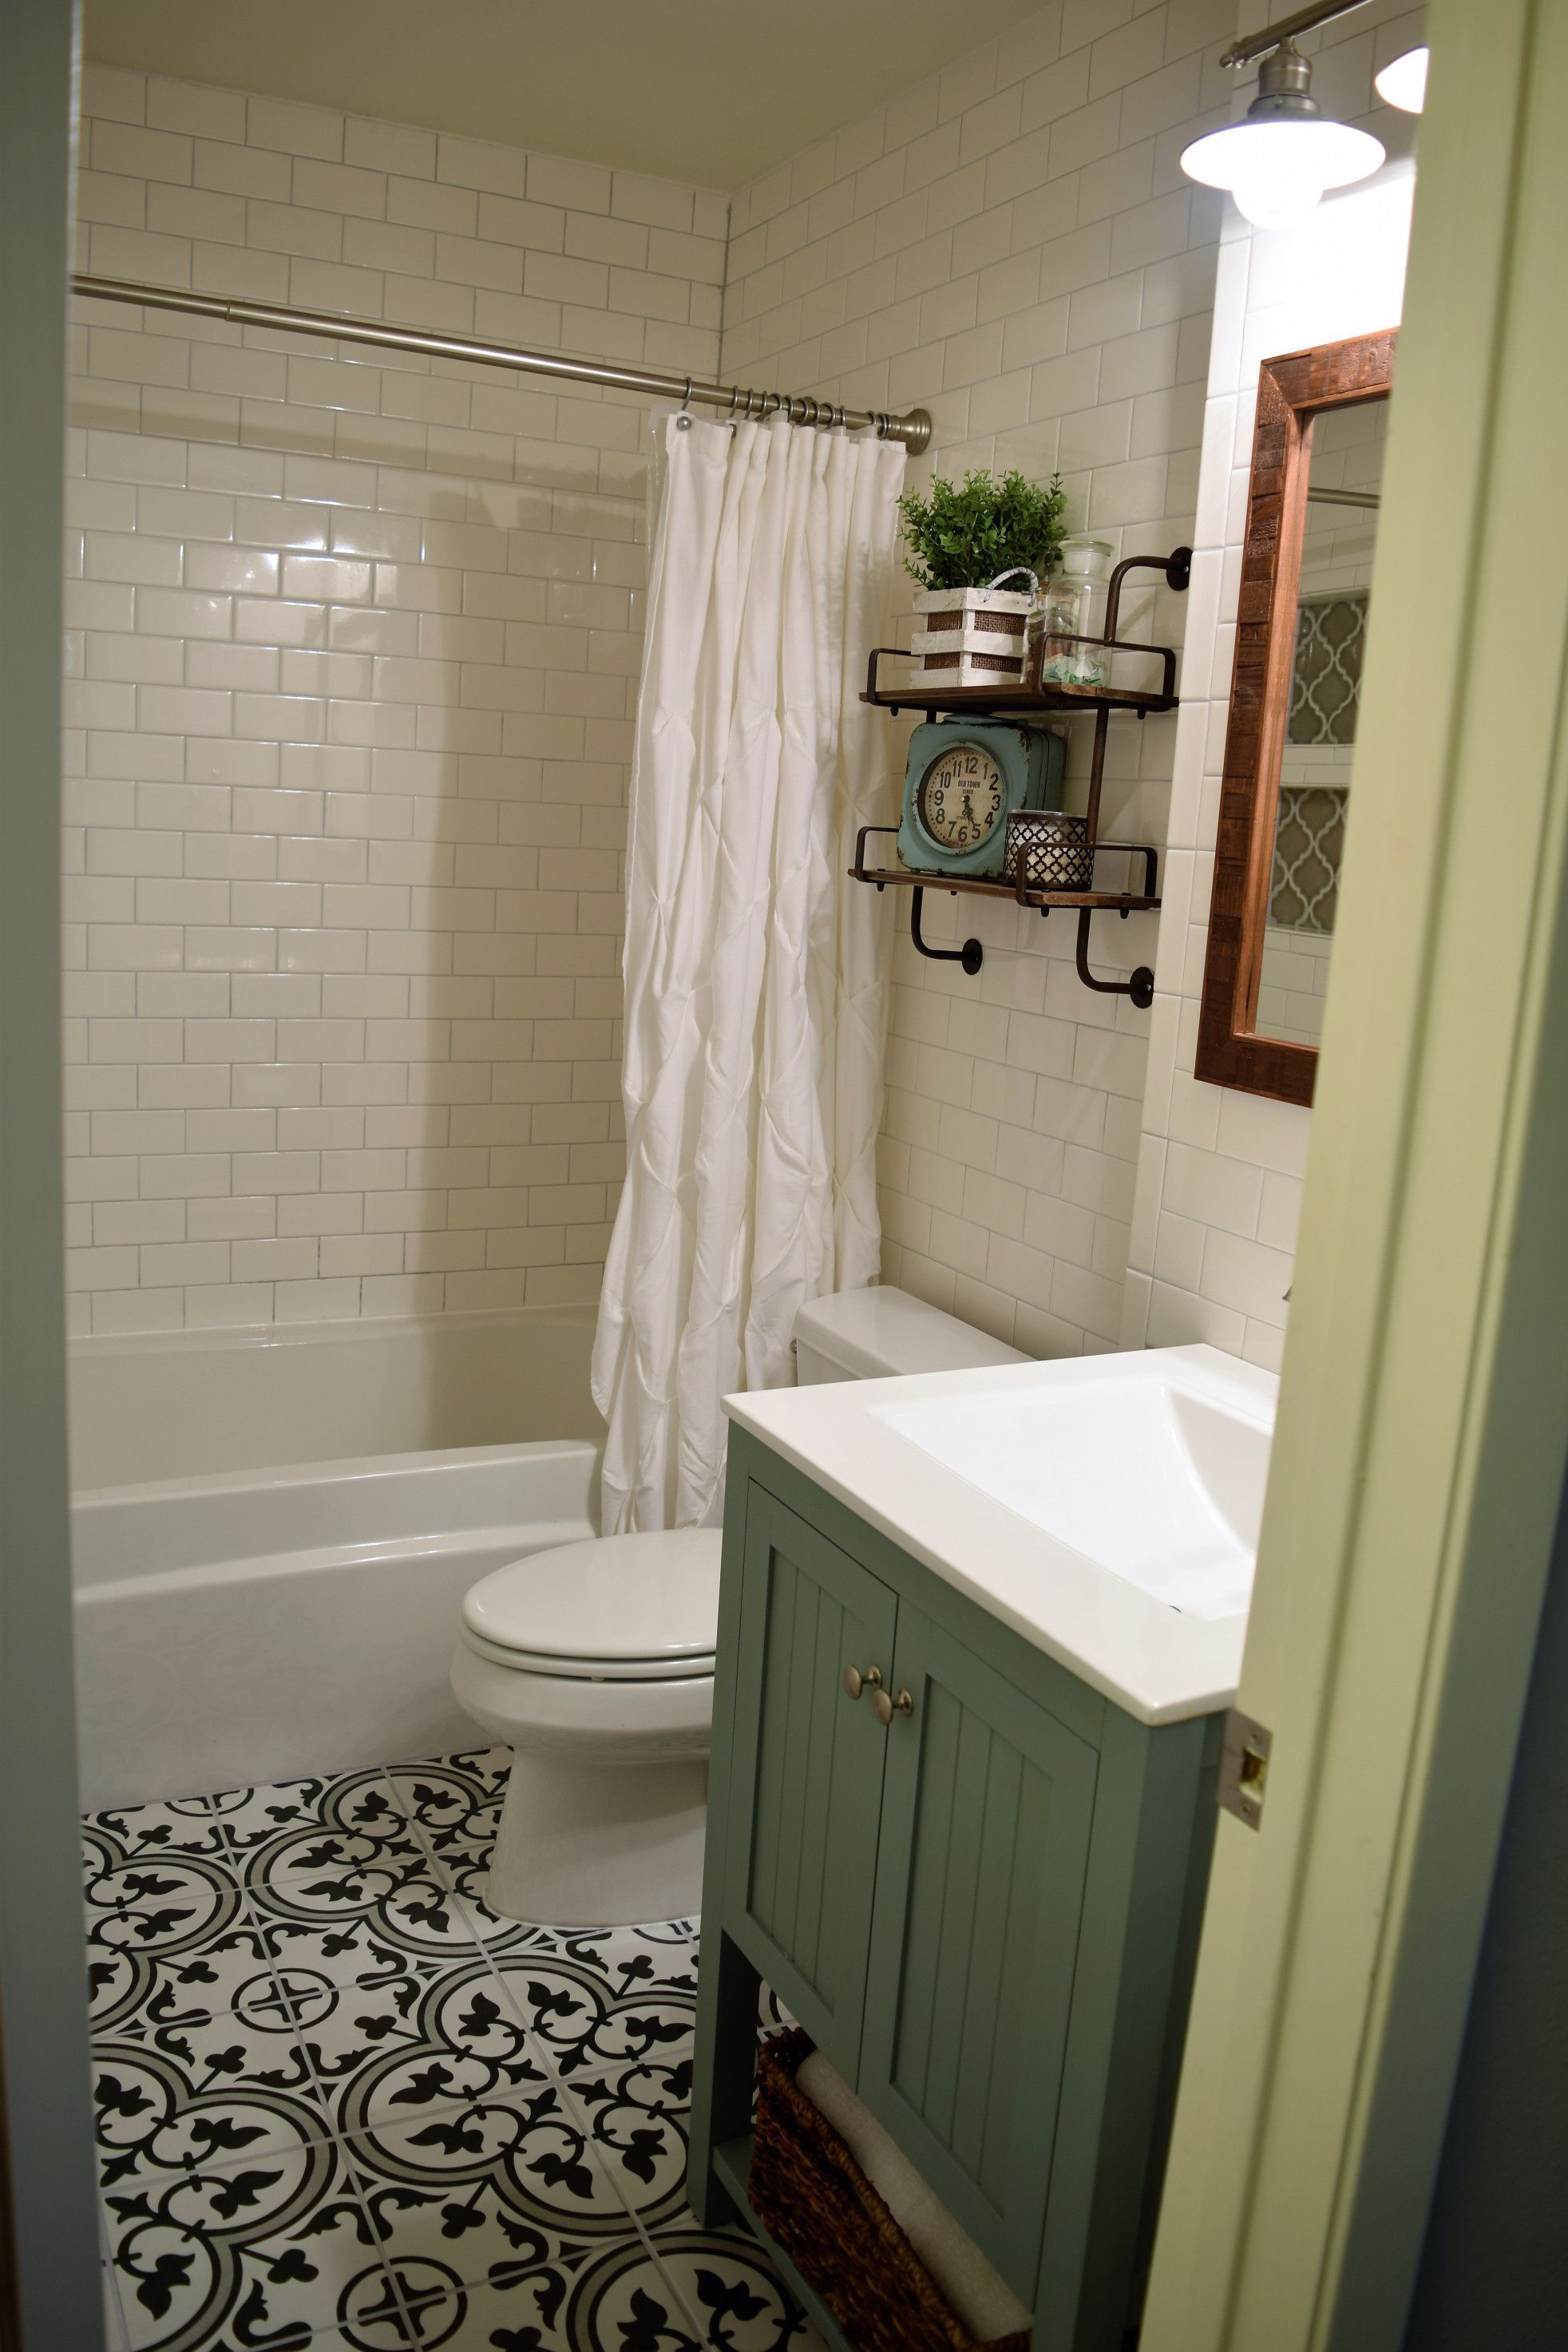 Small Bathroom Remodel With Subway Tile Walls And Cement Tile